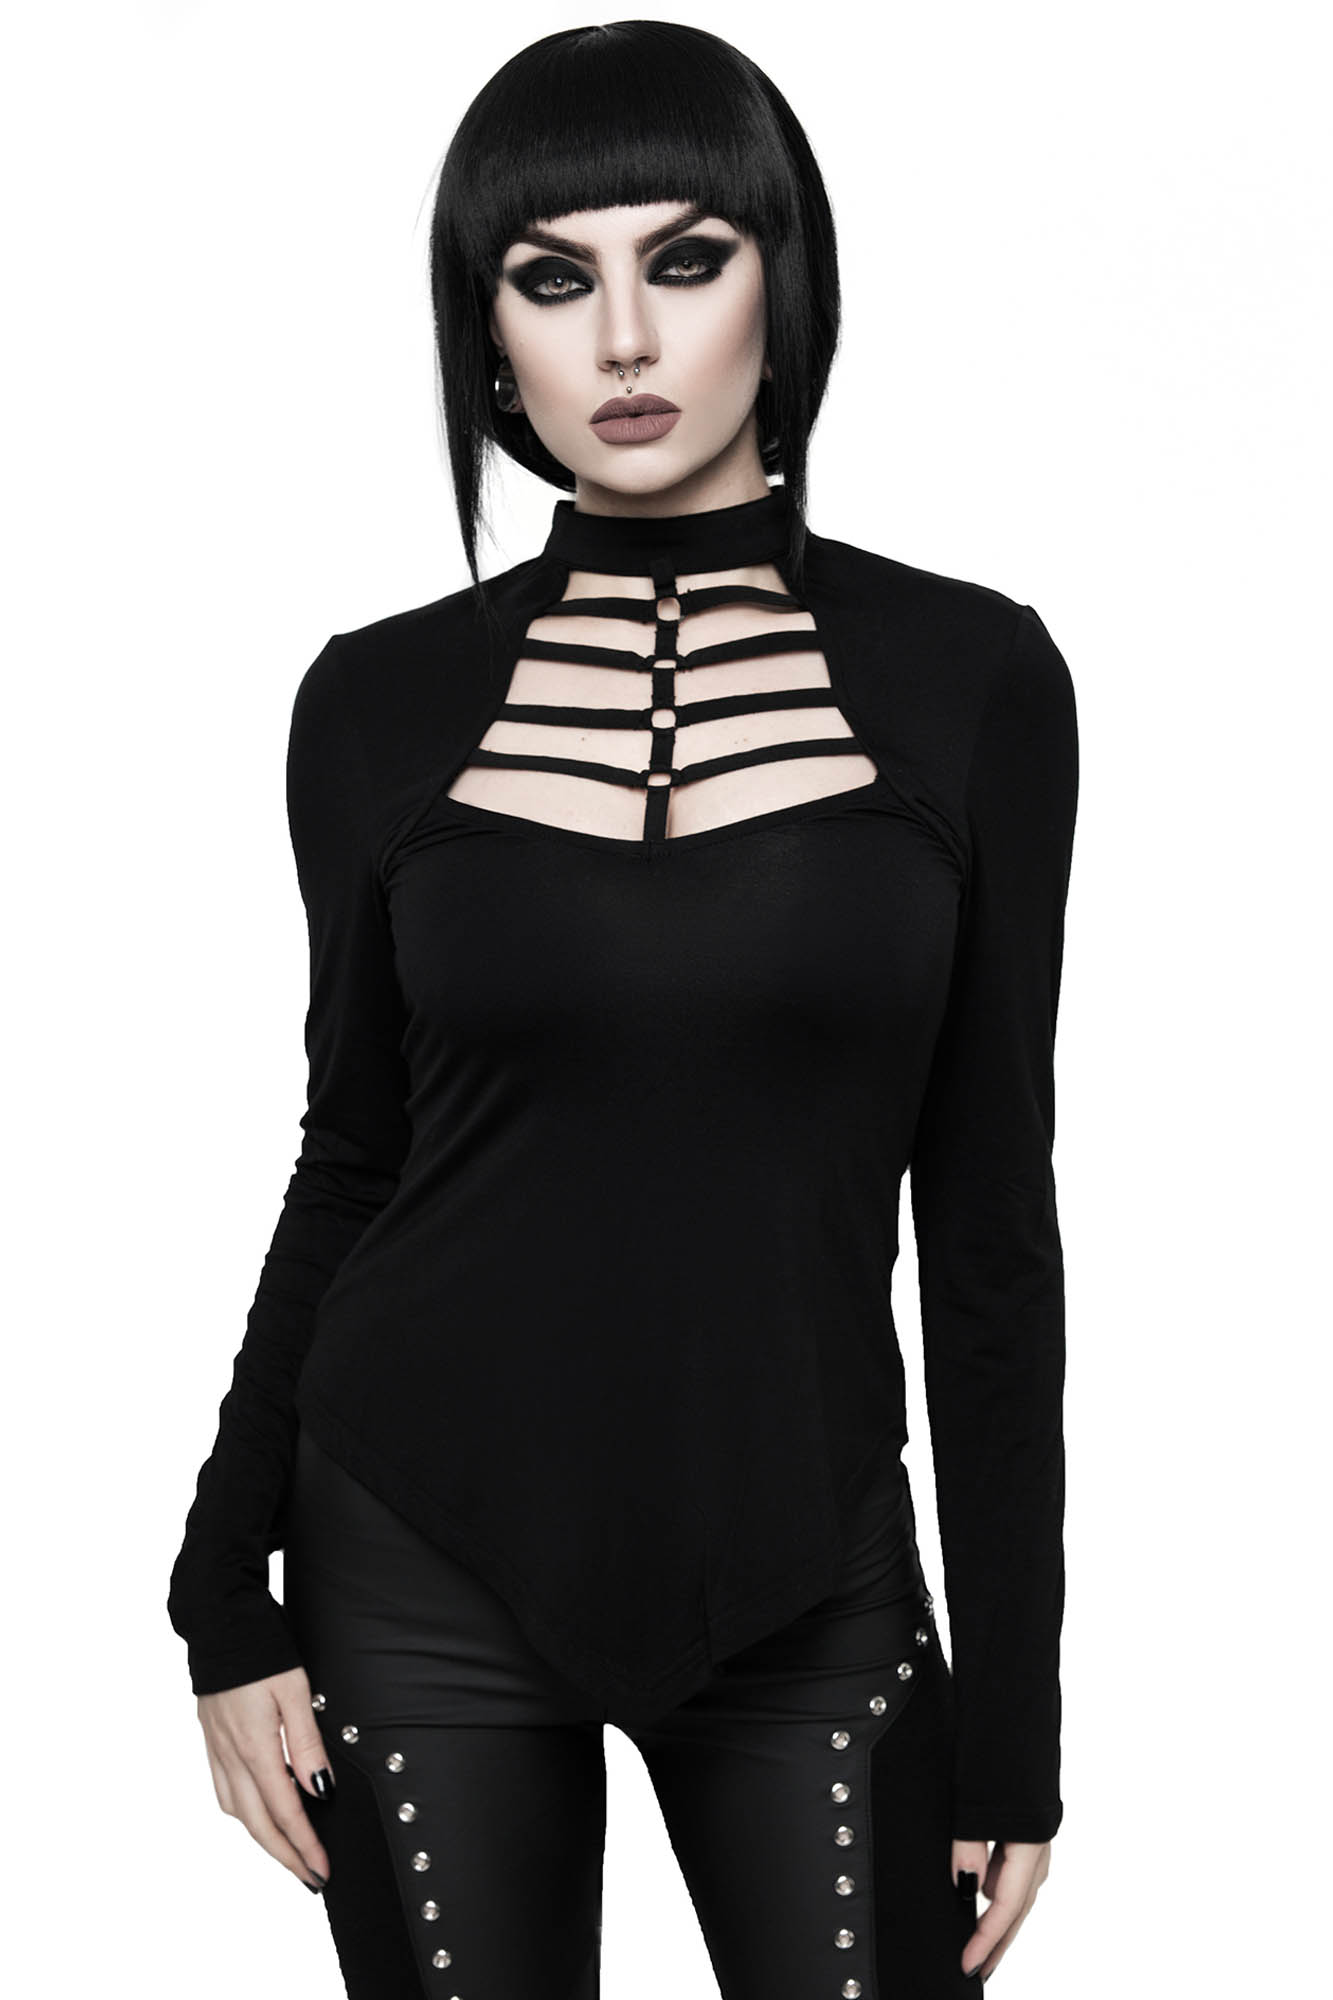 b6c9489d5 Sceptre Long Sleeve Top | KILLSTAR - US Store